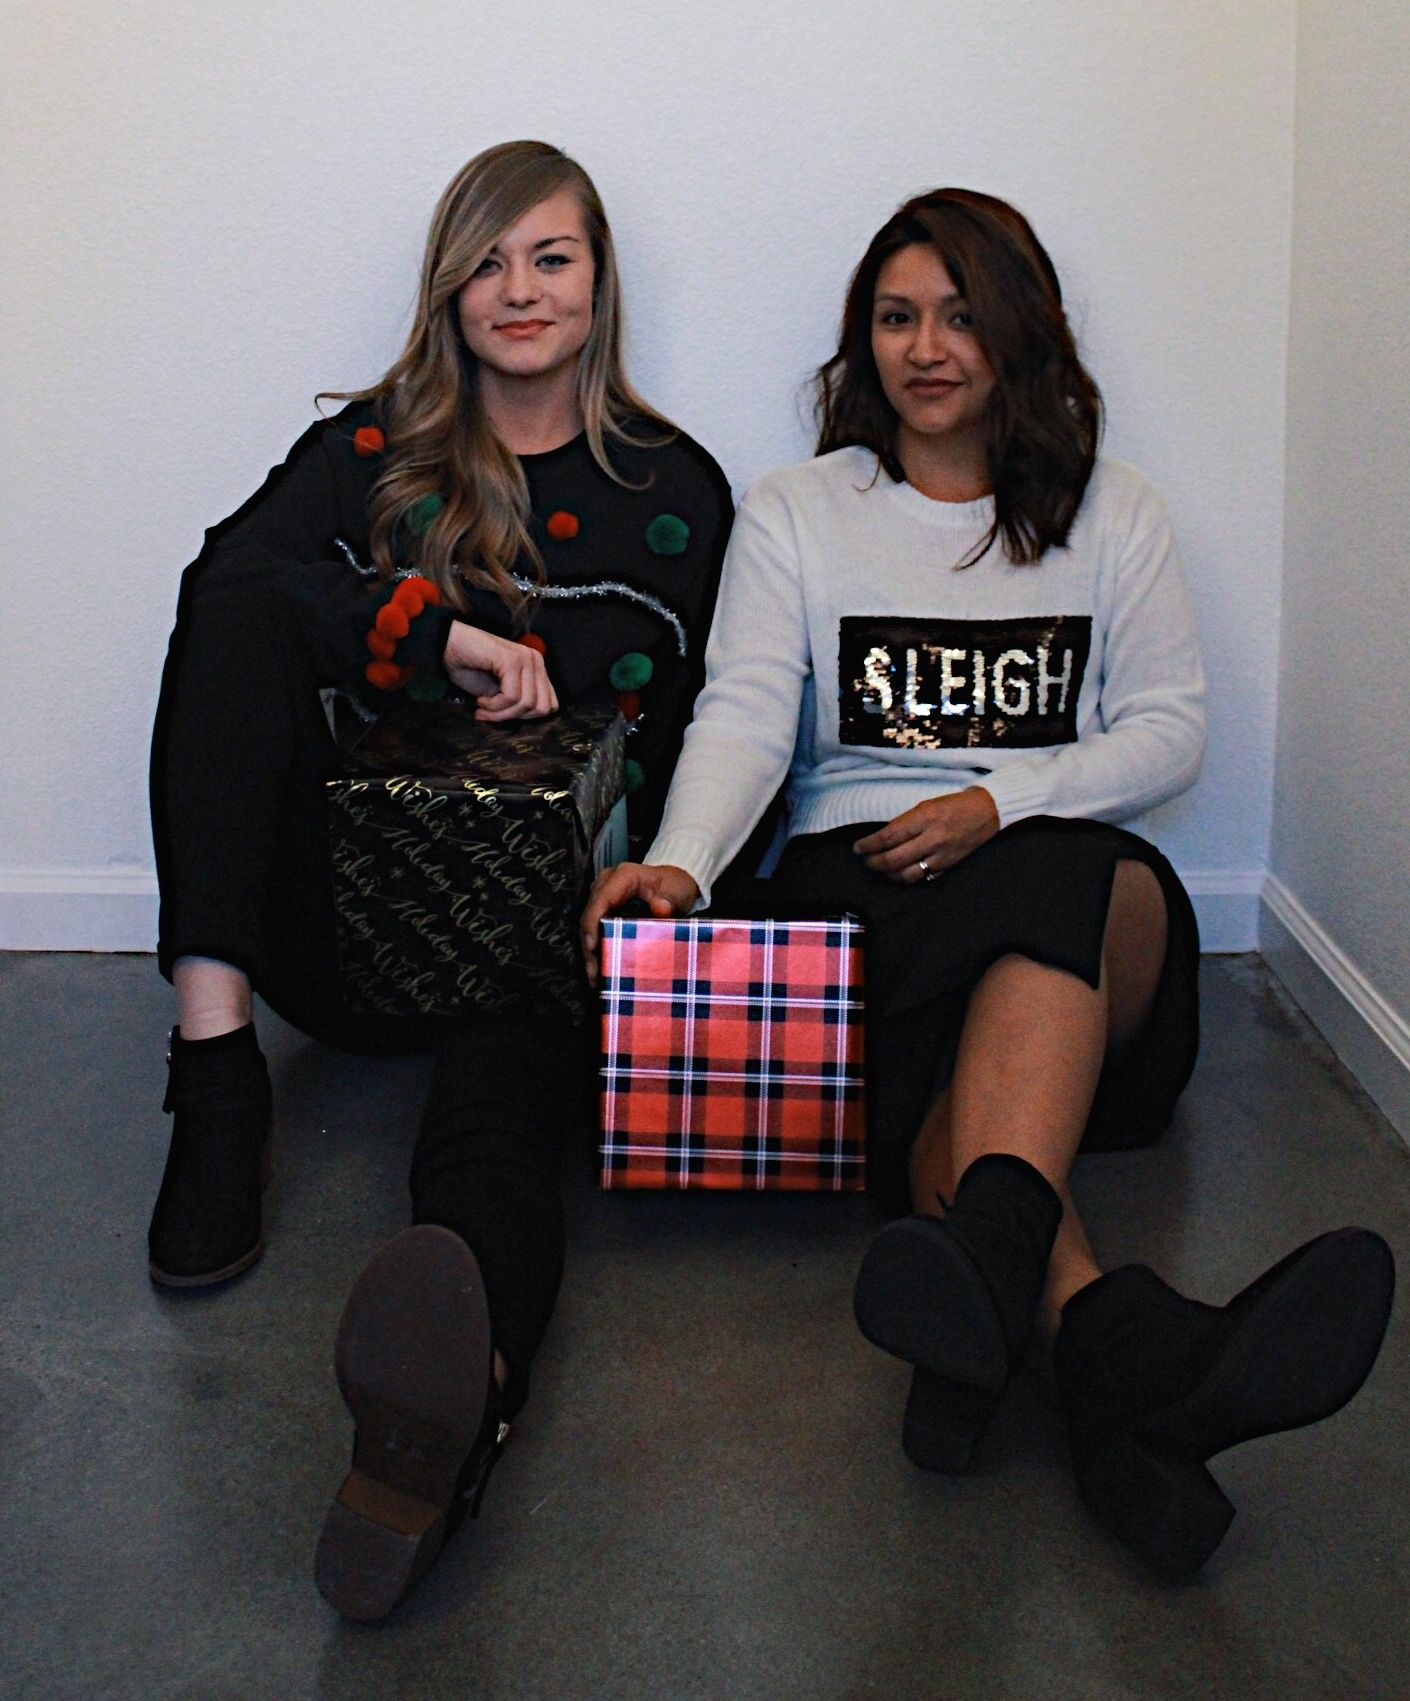 Ugly Christmas sweaters/ Pom Poms and Sleigh All Day with gift boxes